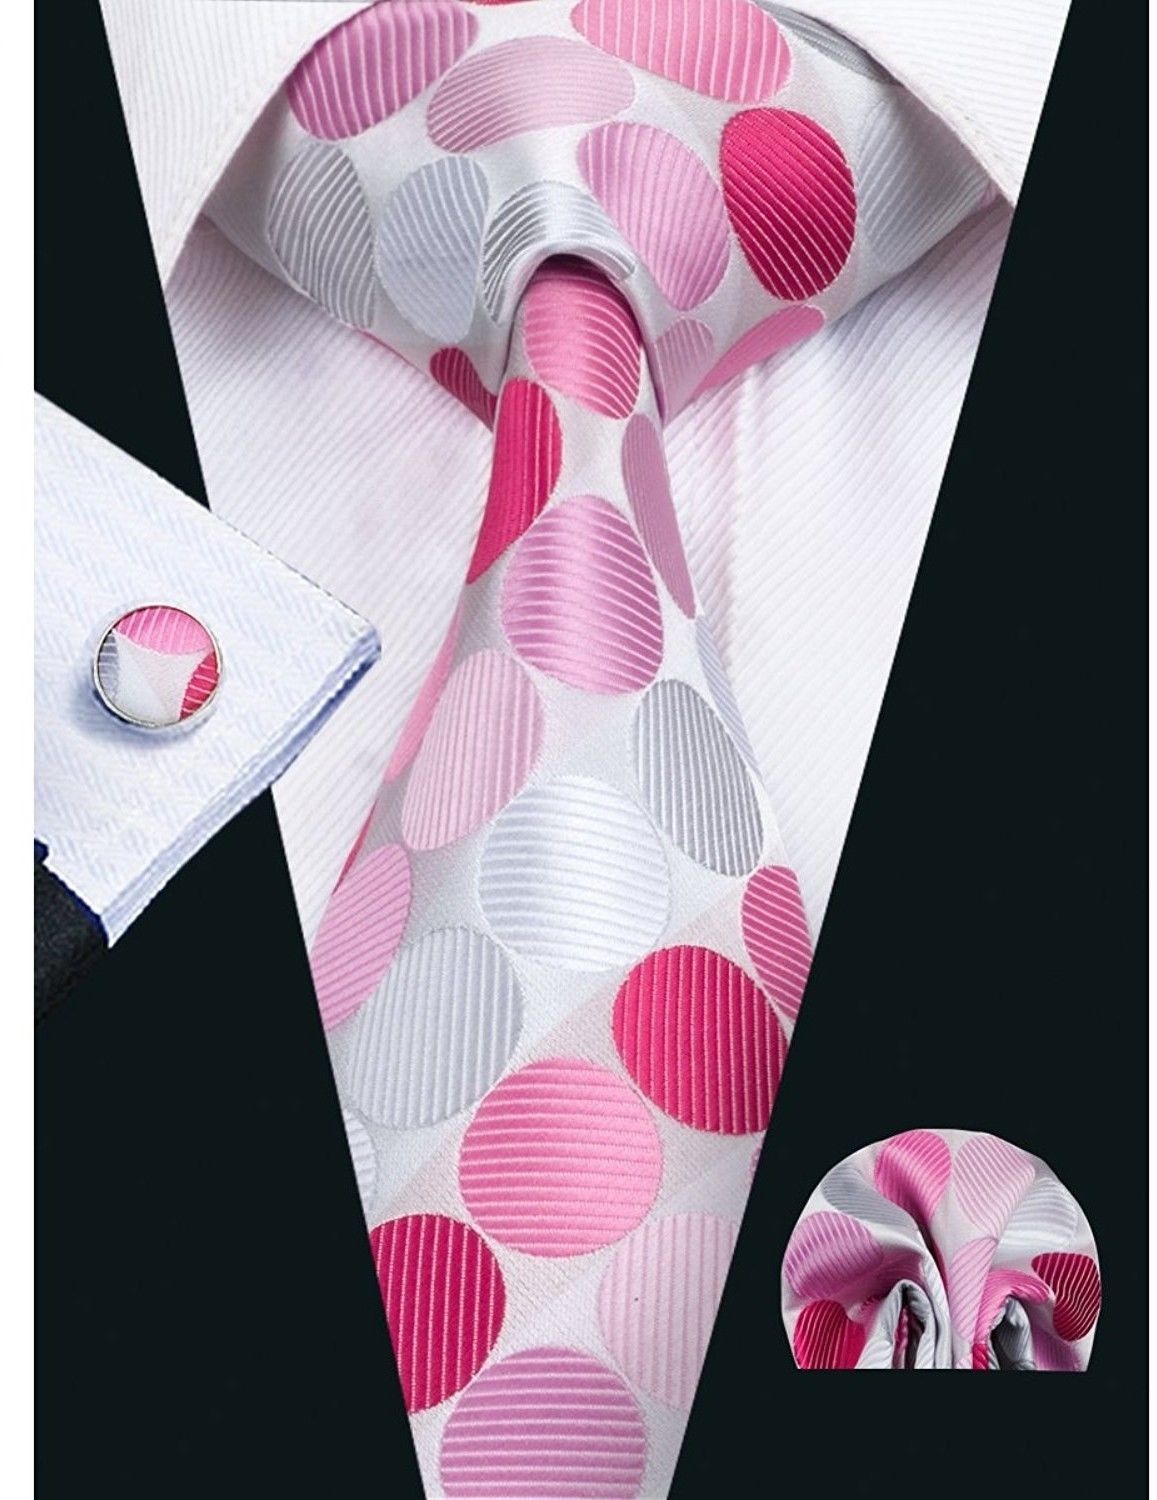 Primary image for Barry.Wang Men's Pink Ties Polka Dot Tie New Fashion Necktie Set